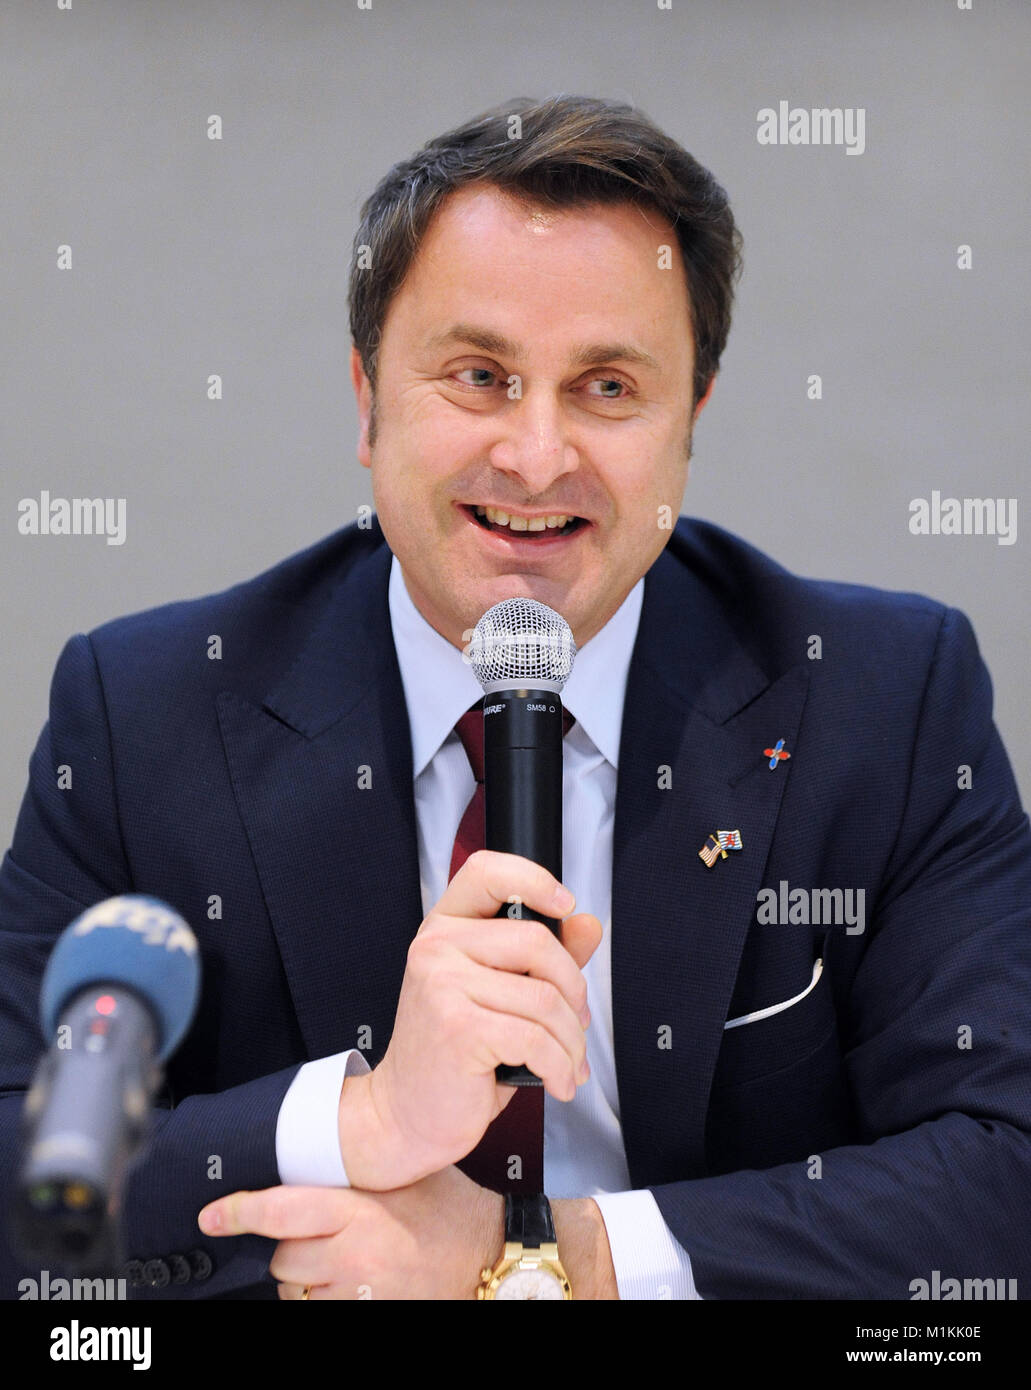 Cape Canaveral, USA. 30th Jan, 2018. Xavier Bettel, Prime Minister of Luxembourg, participates in a pre-launch press - Stock Image